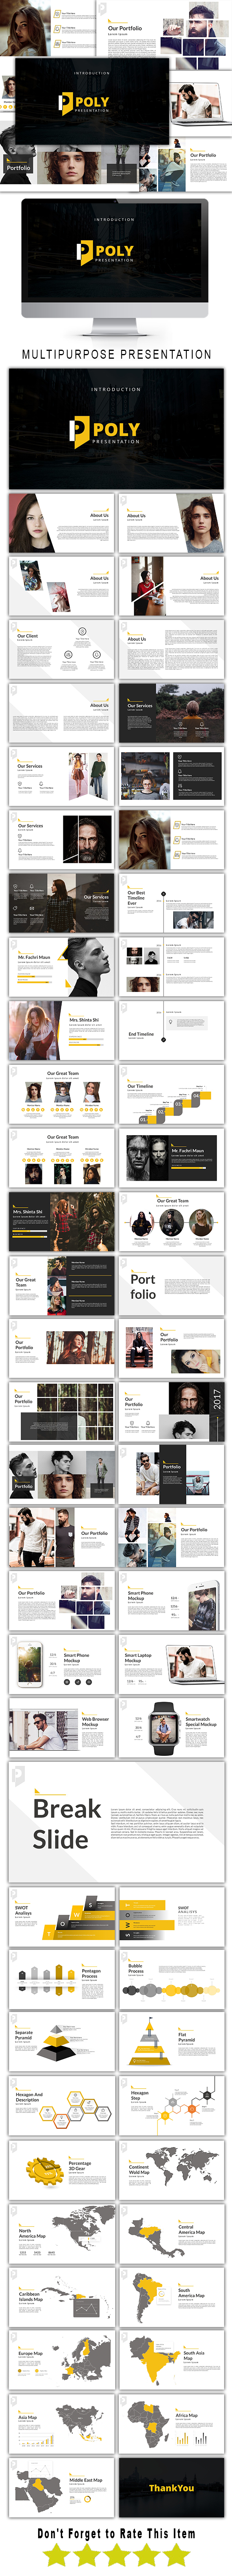 Poly Multipurpose Google Slide Template - Google Slides Presentation Templates